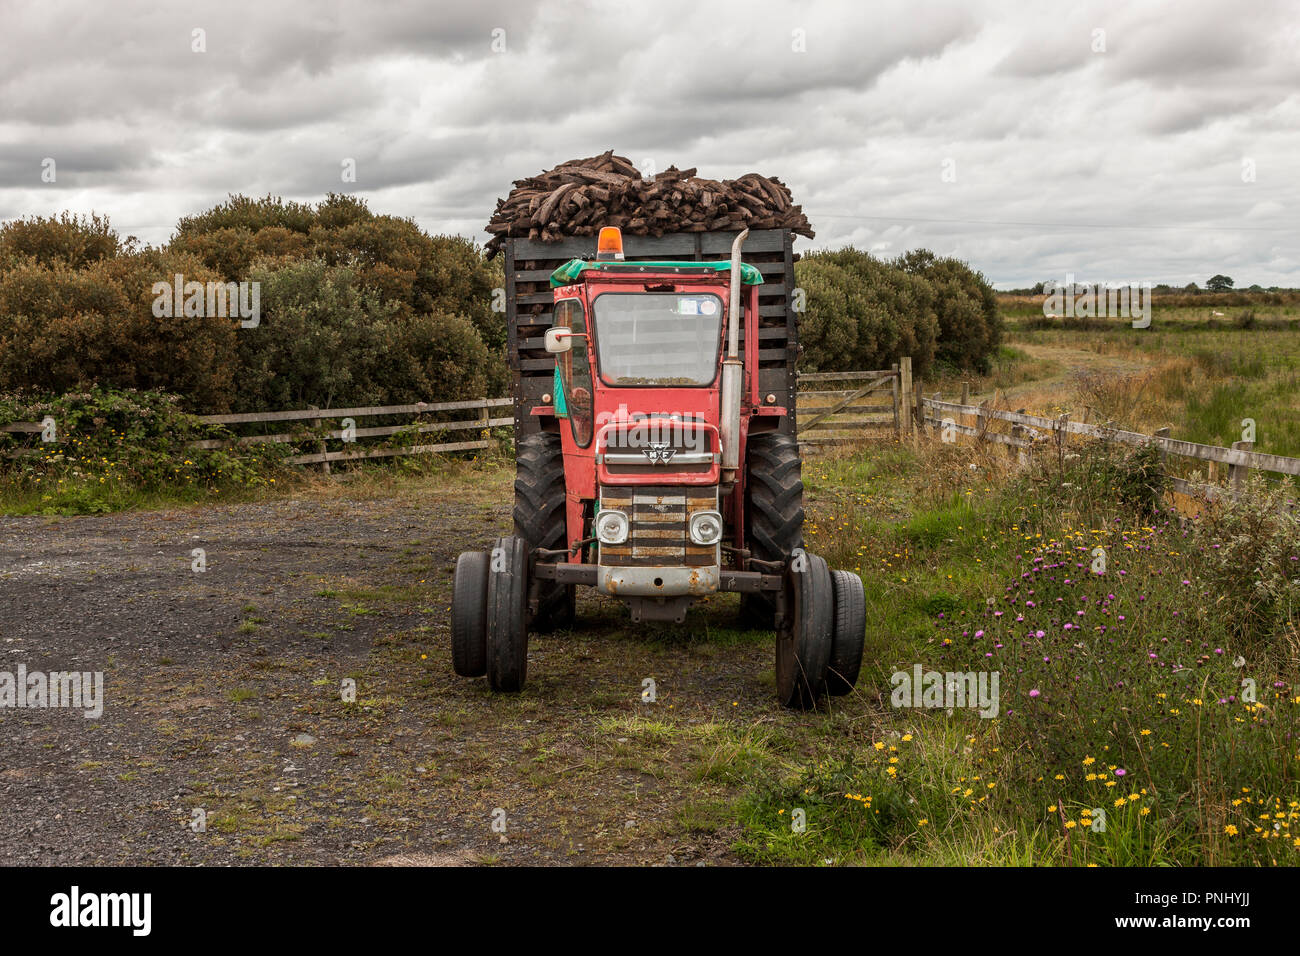 Easkey, Sligo, Ireland. 13th August, 2009. A tractor and trailer with a load of turf parked up at the side of the road near Easkey, Co. Sligo Ireland - Stock Image